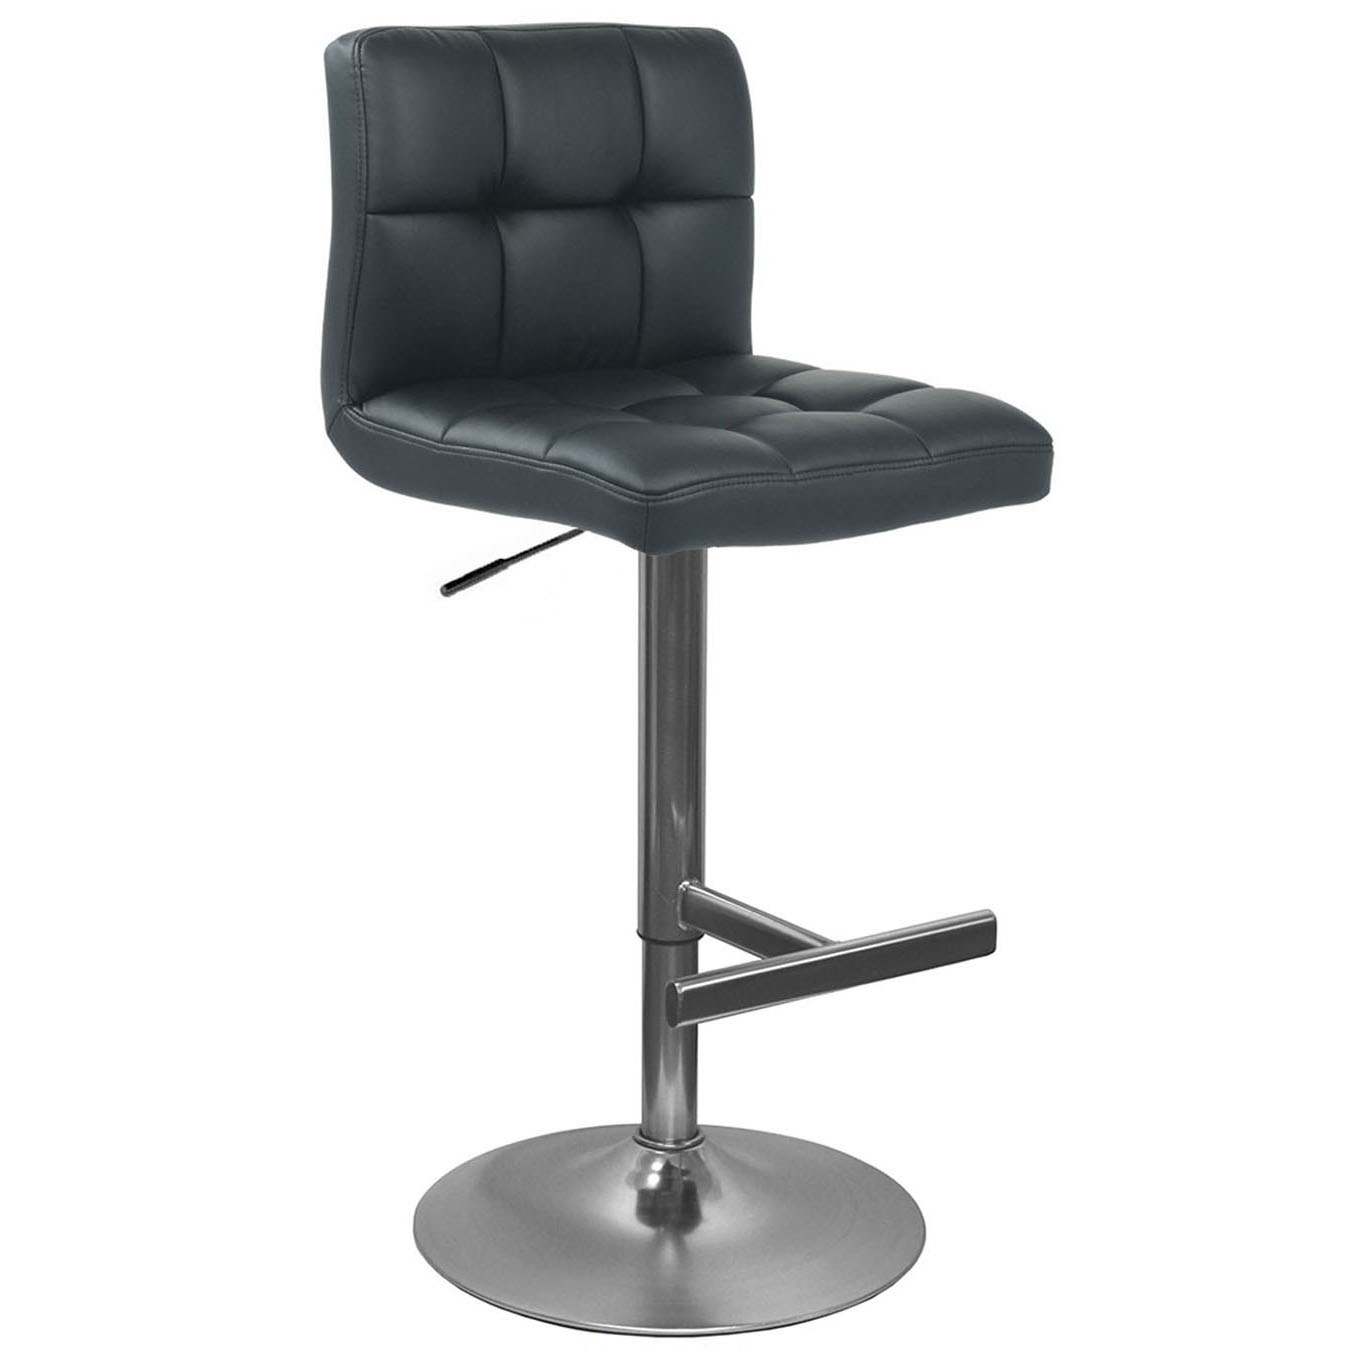 Allegro Leather Brushed Bar Stool - Black